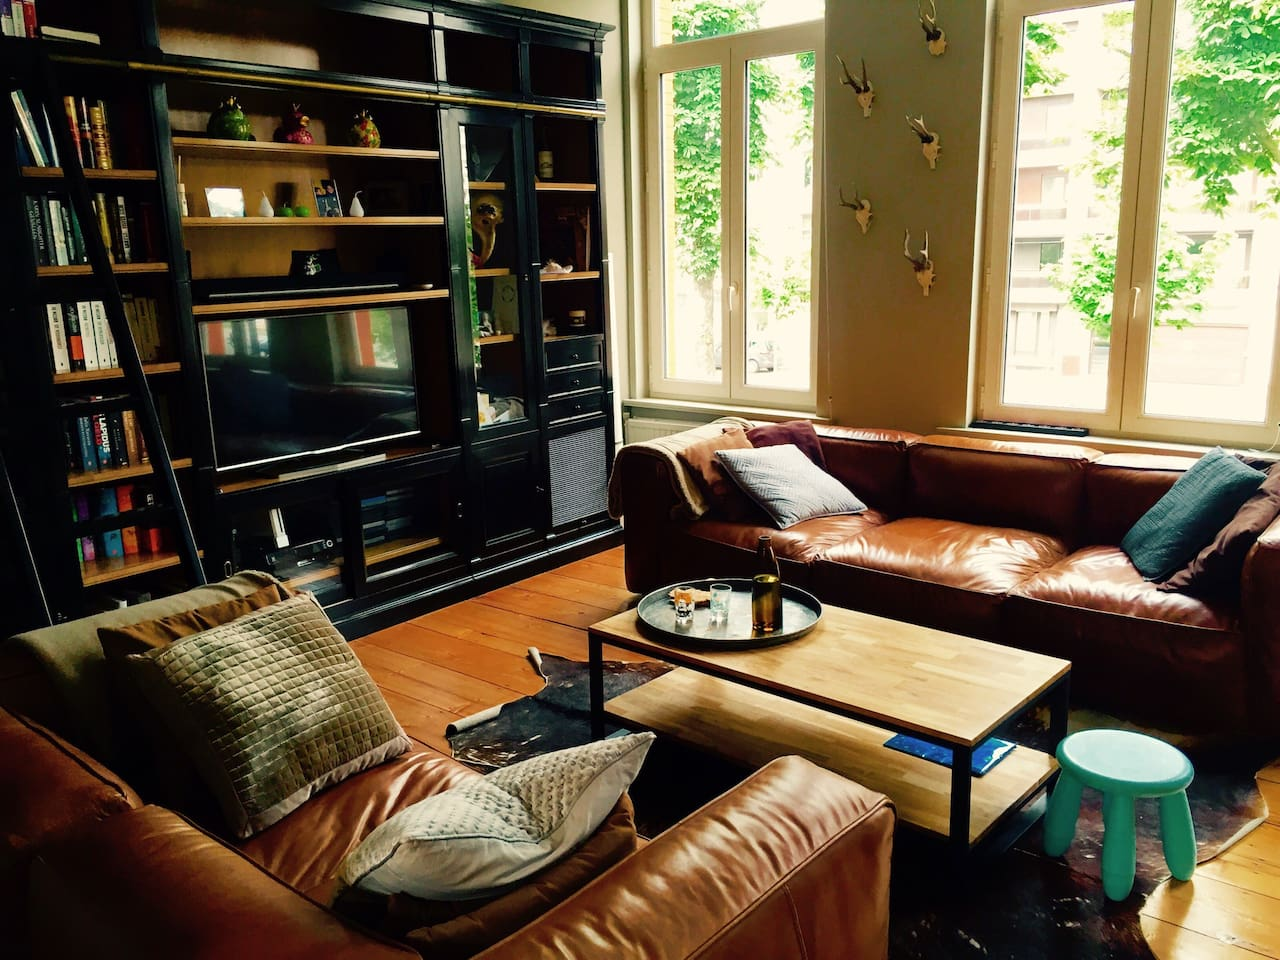 Living room sofa - first floor